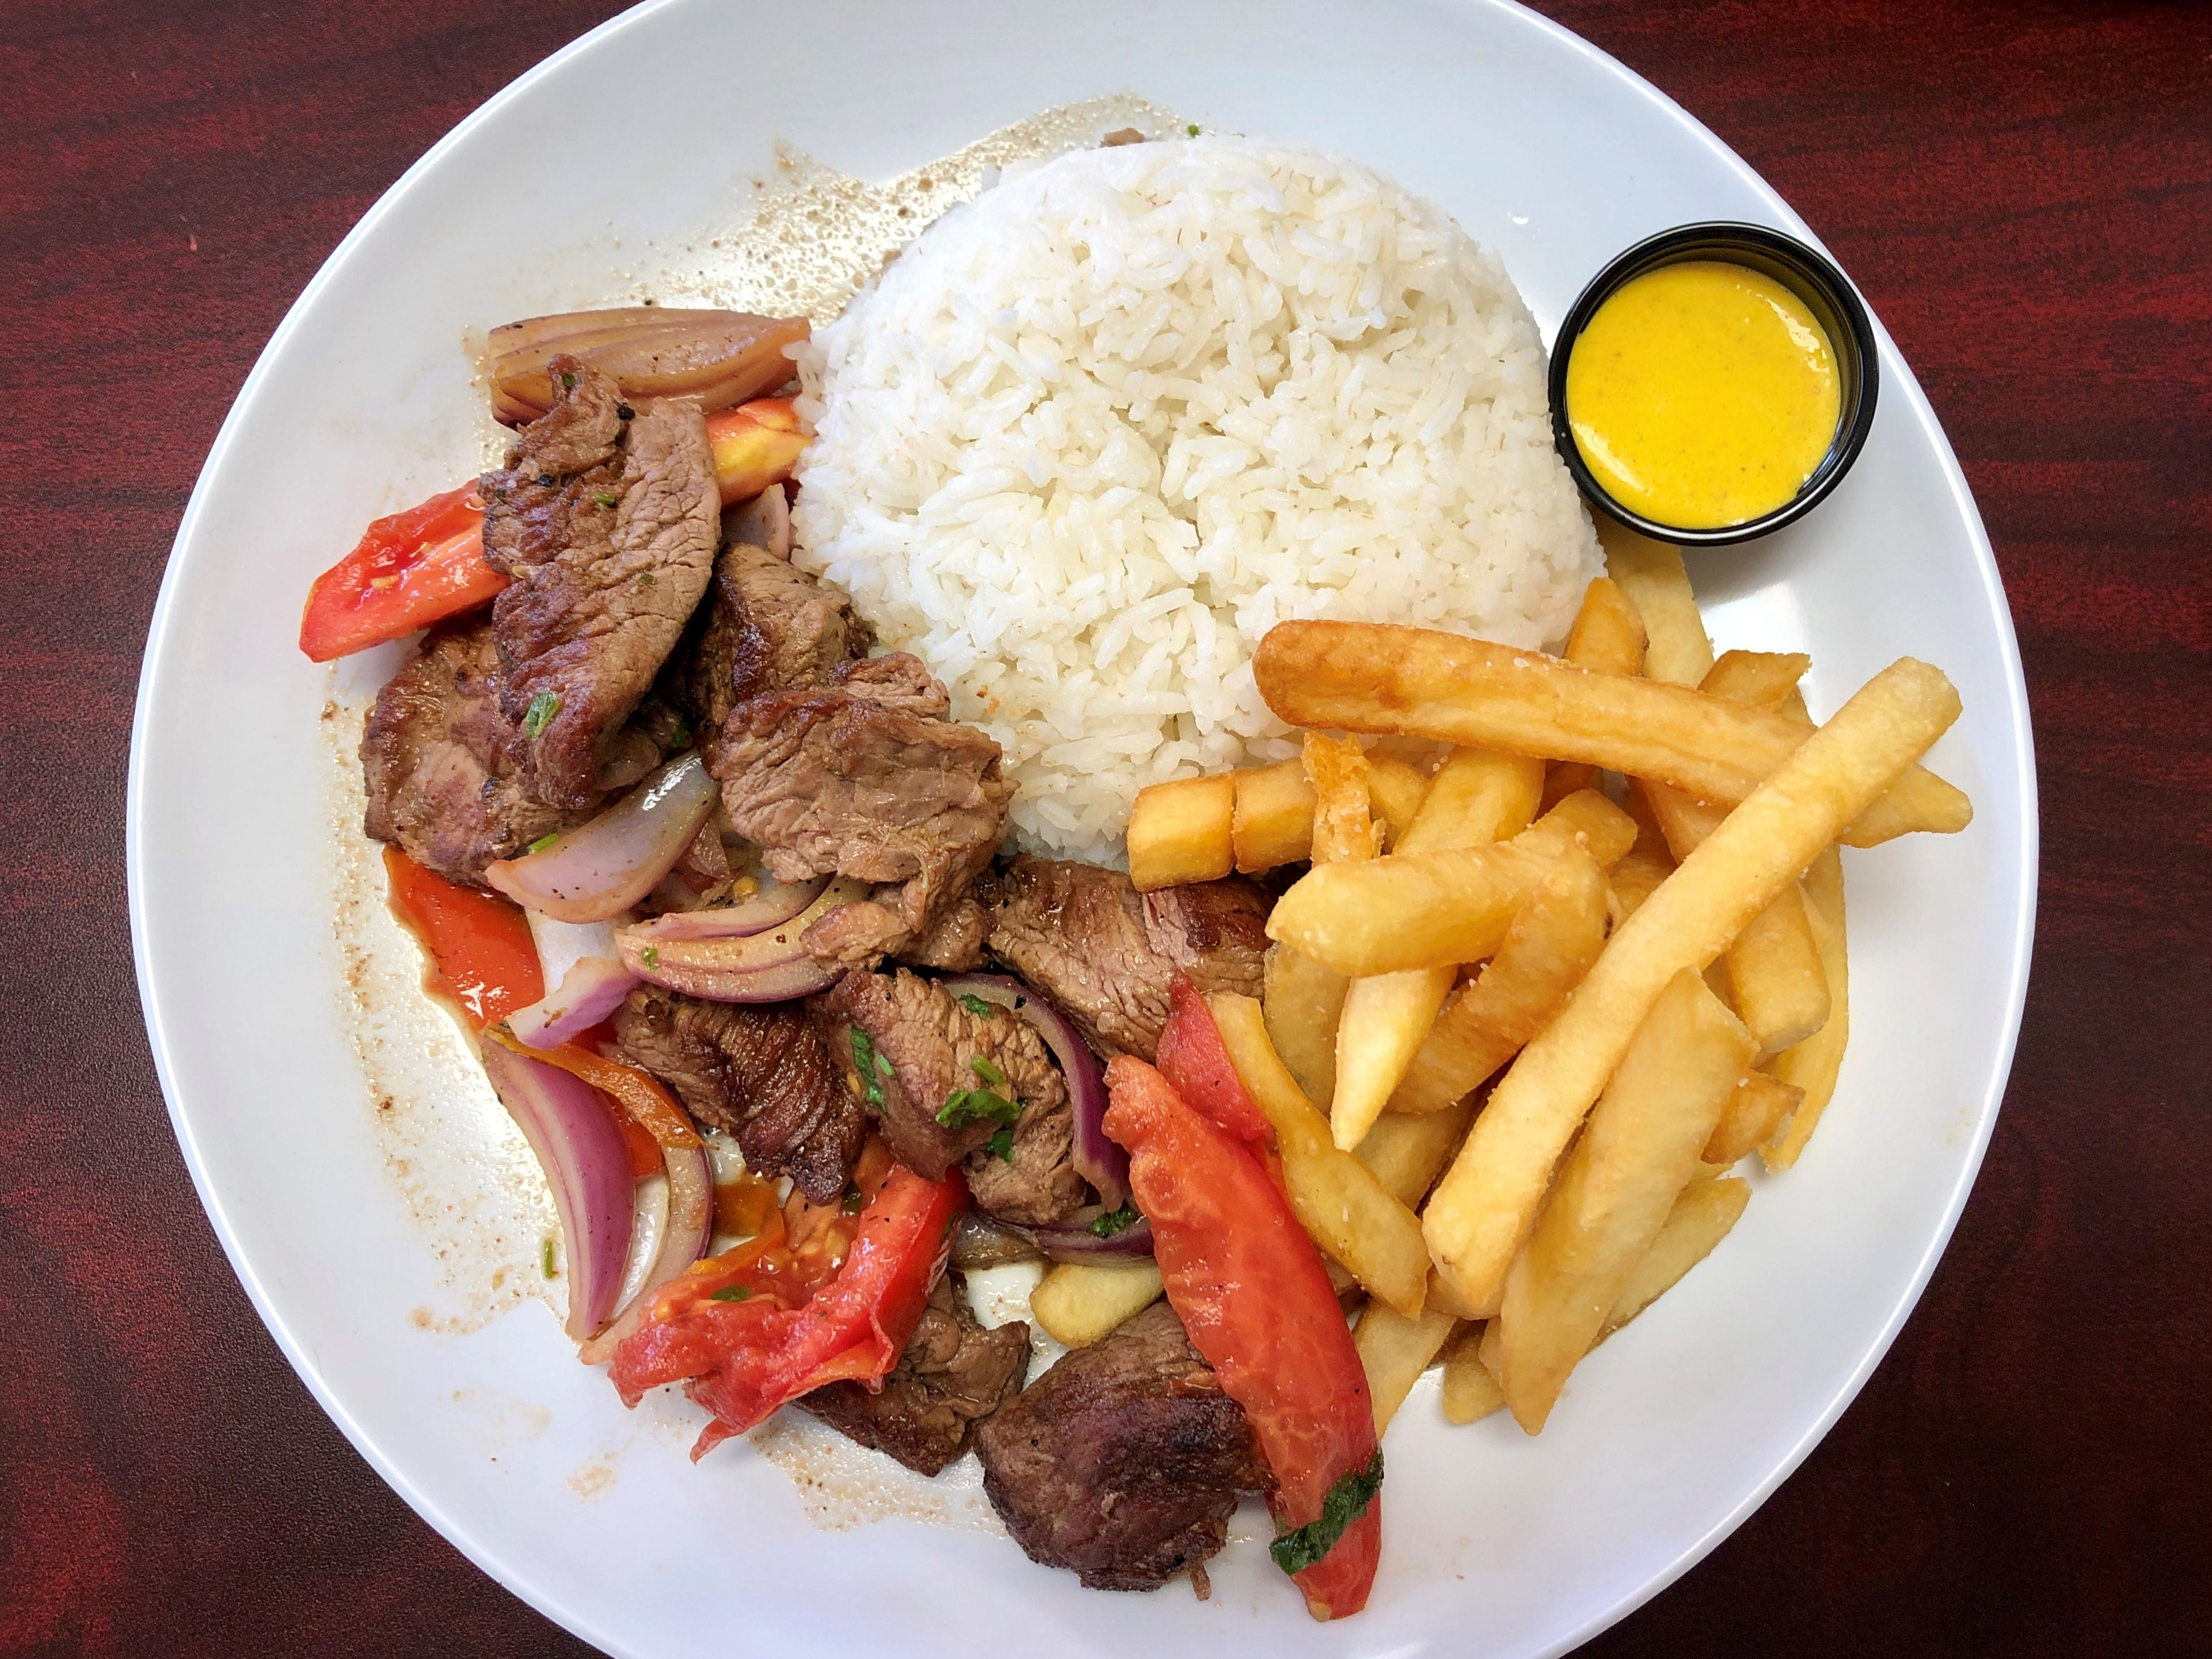 Lomo saltado made with wonderfully tender steak from Renzo's Peruvian Kitchen in Cape Coral.